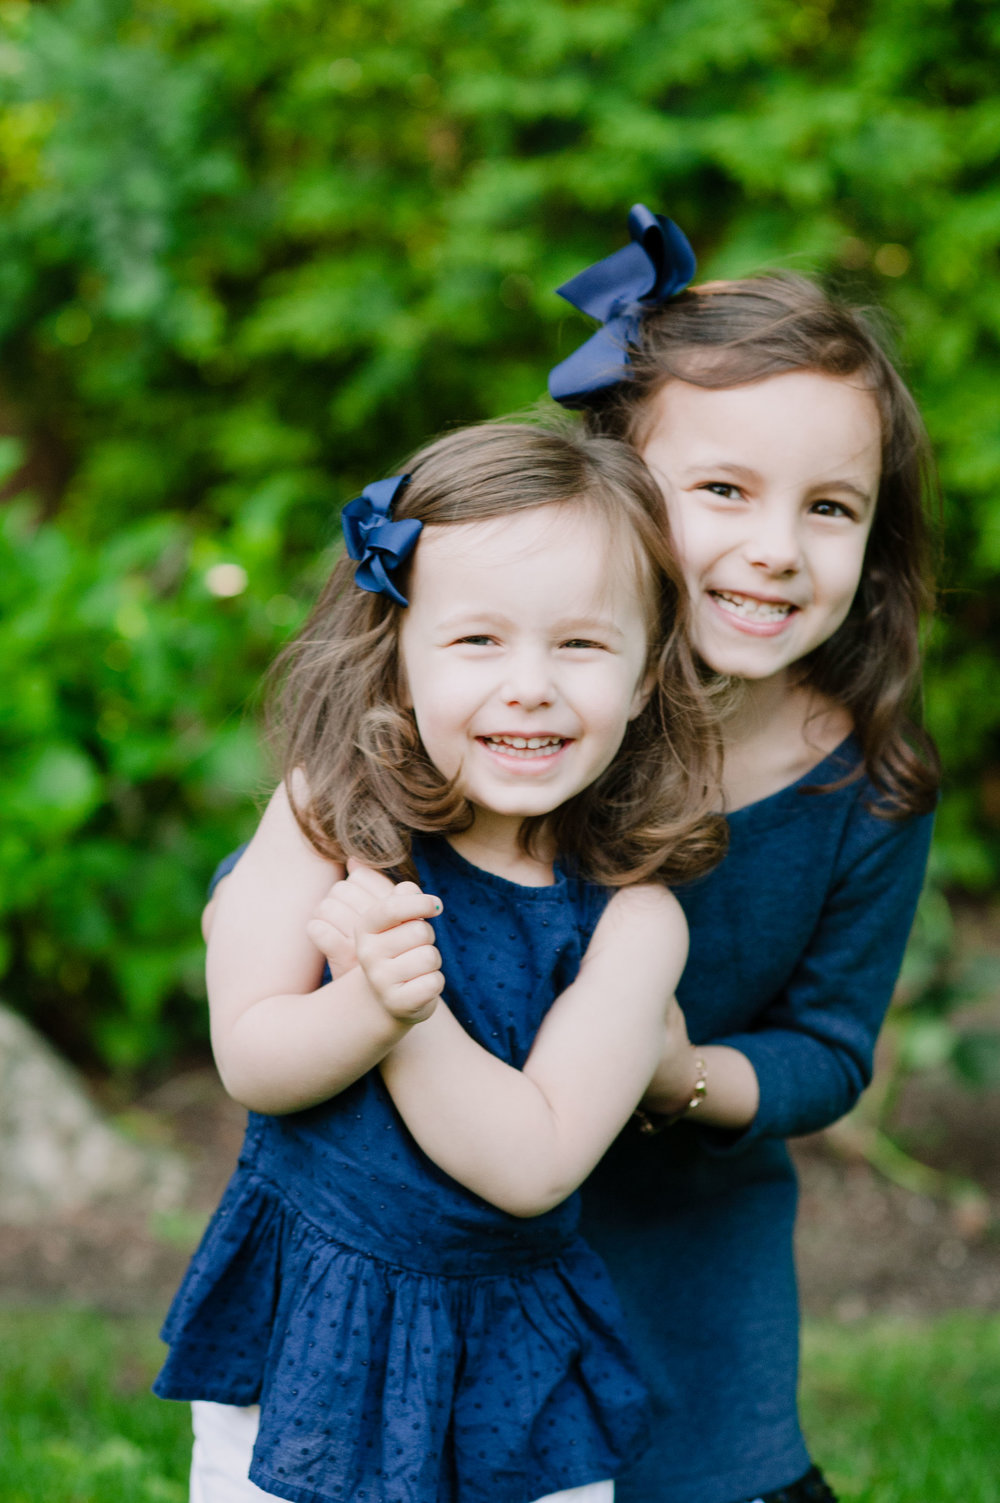 scarsdale westchester new york family photographer